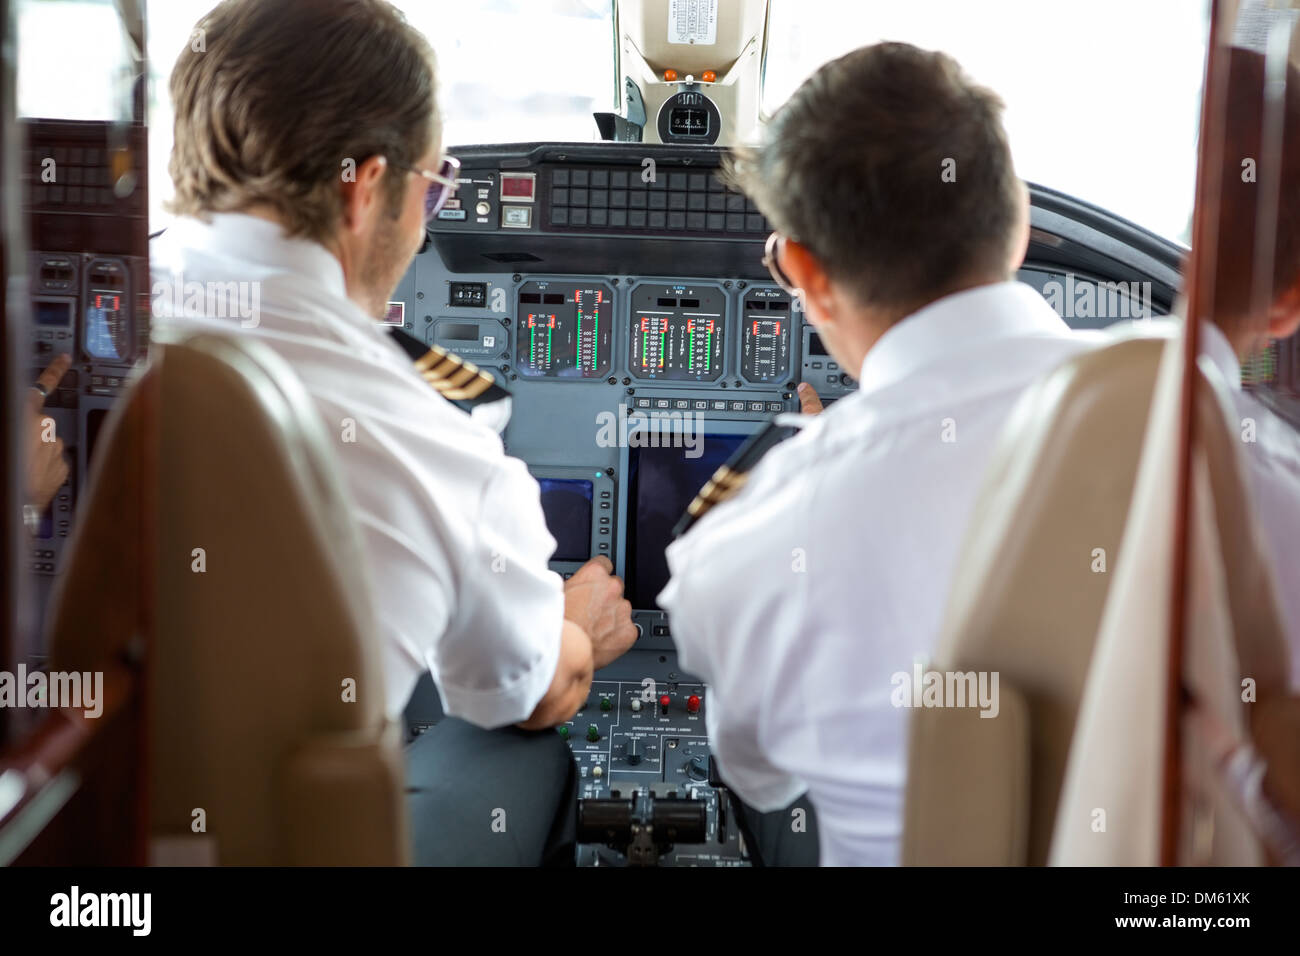 Pilots Operating Controls Of Corporate Jet - Stock Image